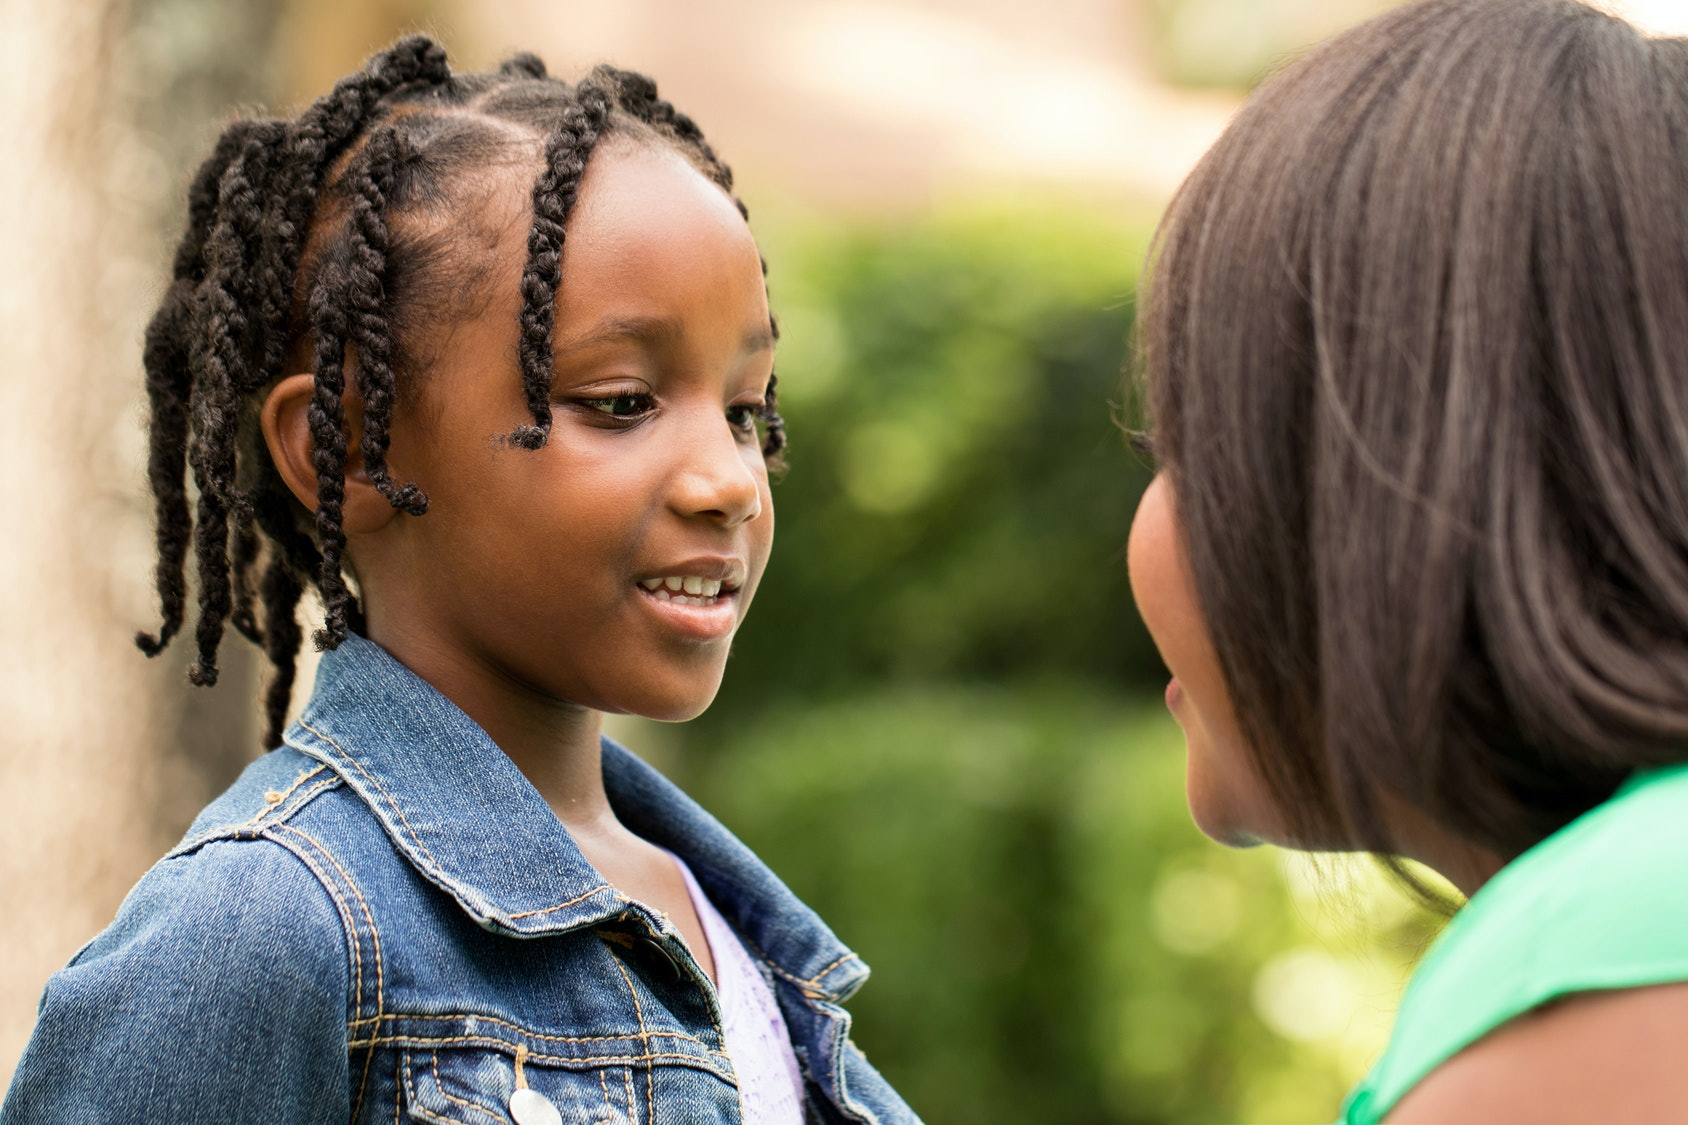 10 Rules For Talking To My Kid About A Toxic Family Member